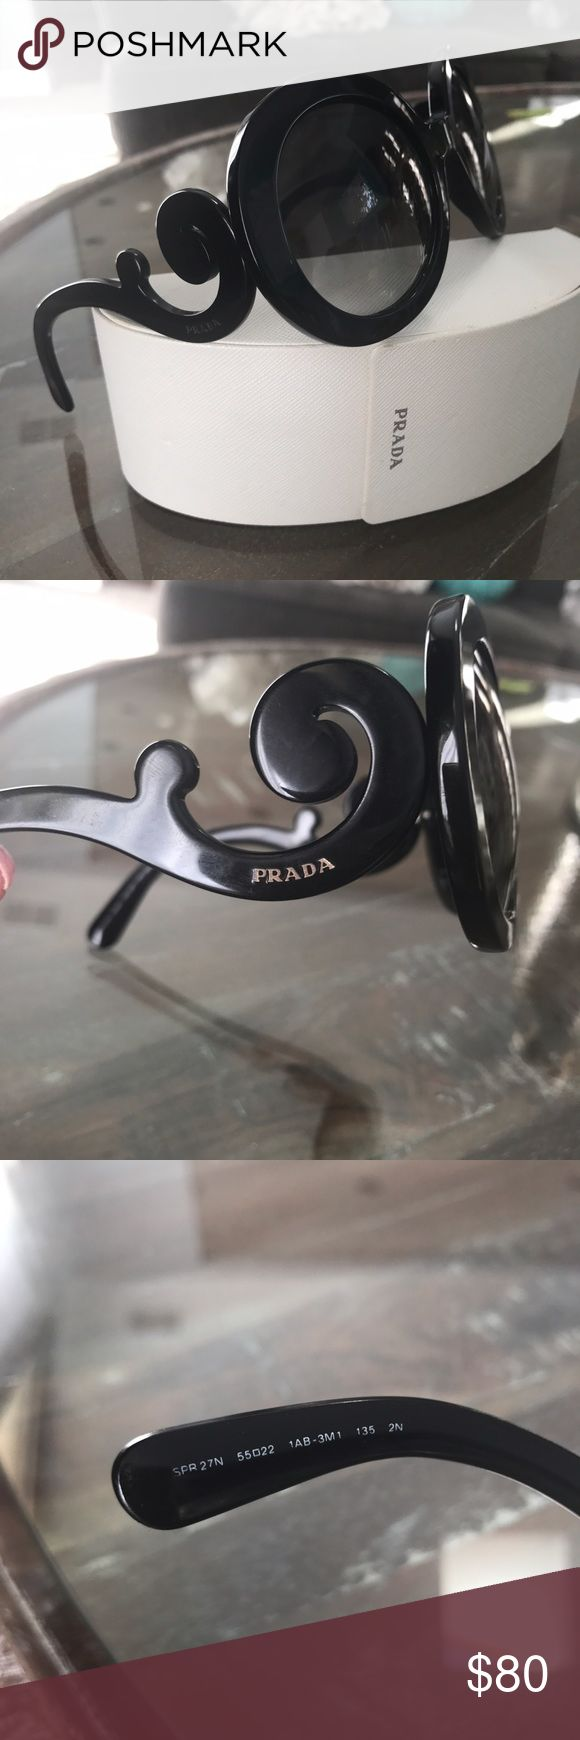 Prada baroque sunglasses Gently used Prada baroque sunglasses in black...some very minor scratches only noticeable when looking at very close..in great condition! Comes with Prada sunglasses case Prada Accessories Sunglasses